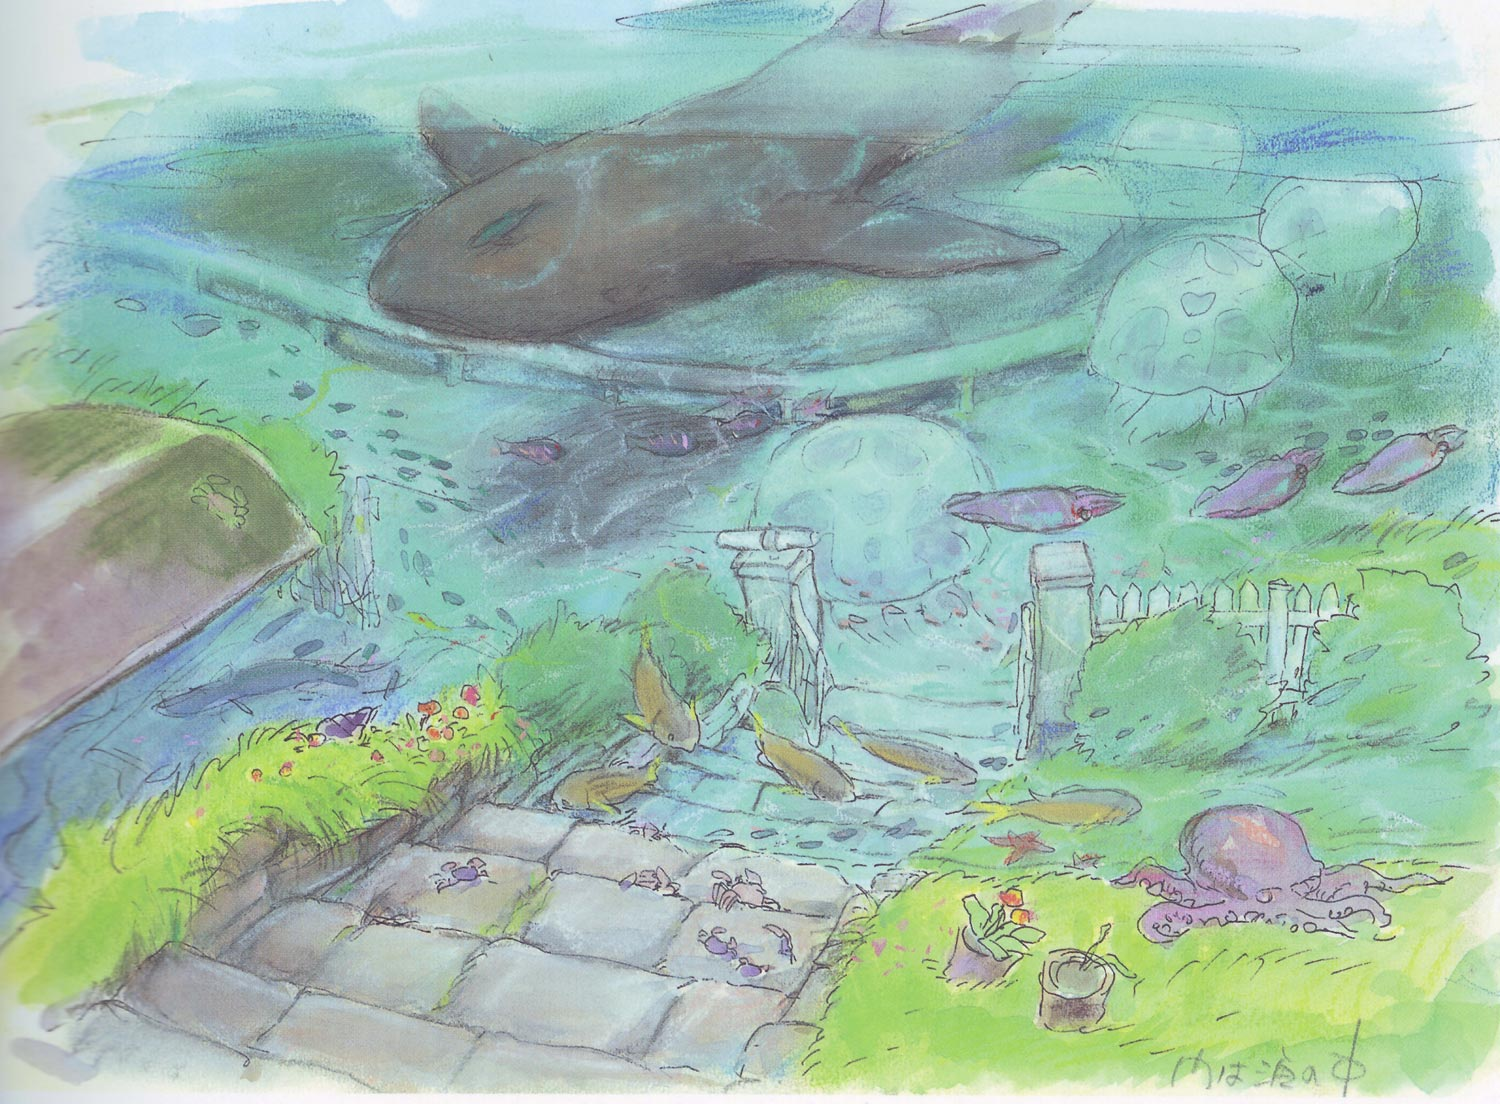 ponyo_on_the_cliff_by_the_sea_artwork_color_key__05.jpg